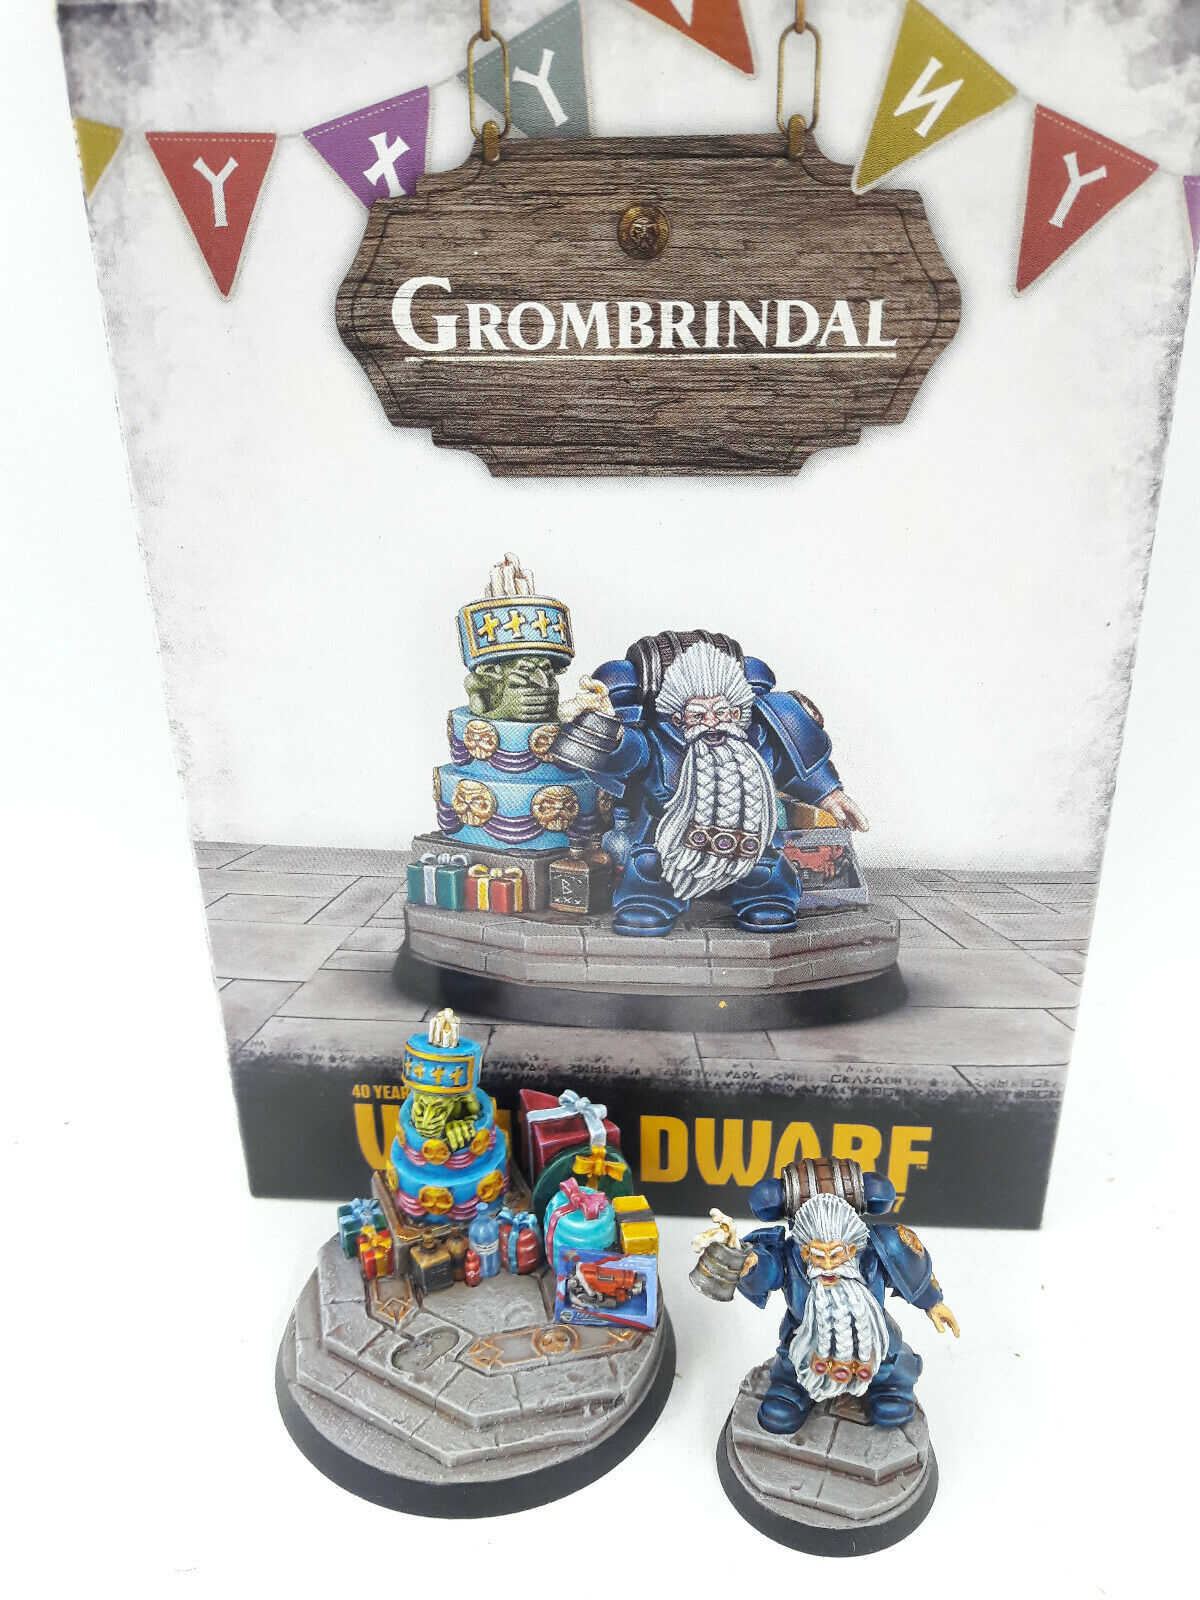 GAMES WORKSHOP WARHAMMER GROMBRINDAL GROMBRINDAL 40TH ANNIVERSARY EXCLUSIVE GREAT PAINTING